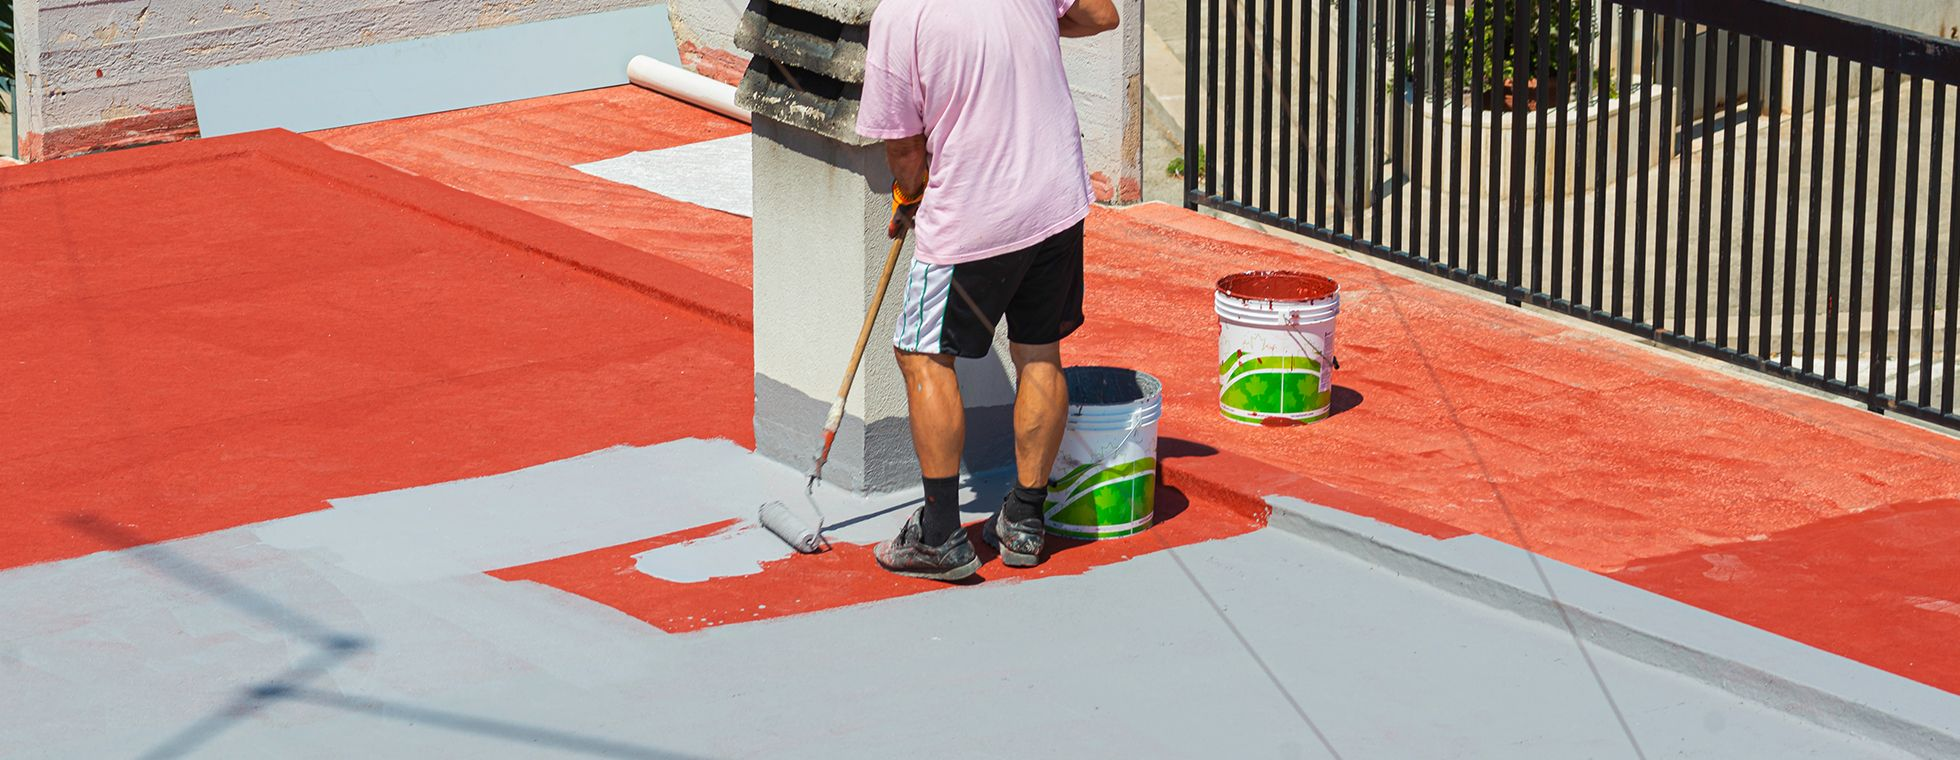 Specification Chemicals Roofing And Wall Restoration